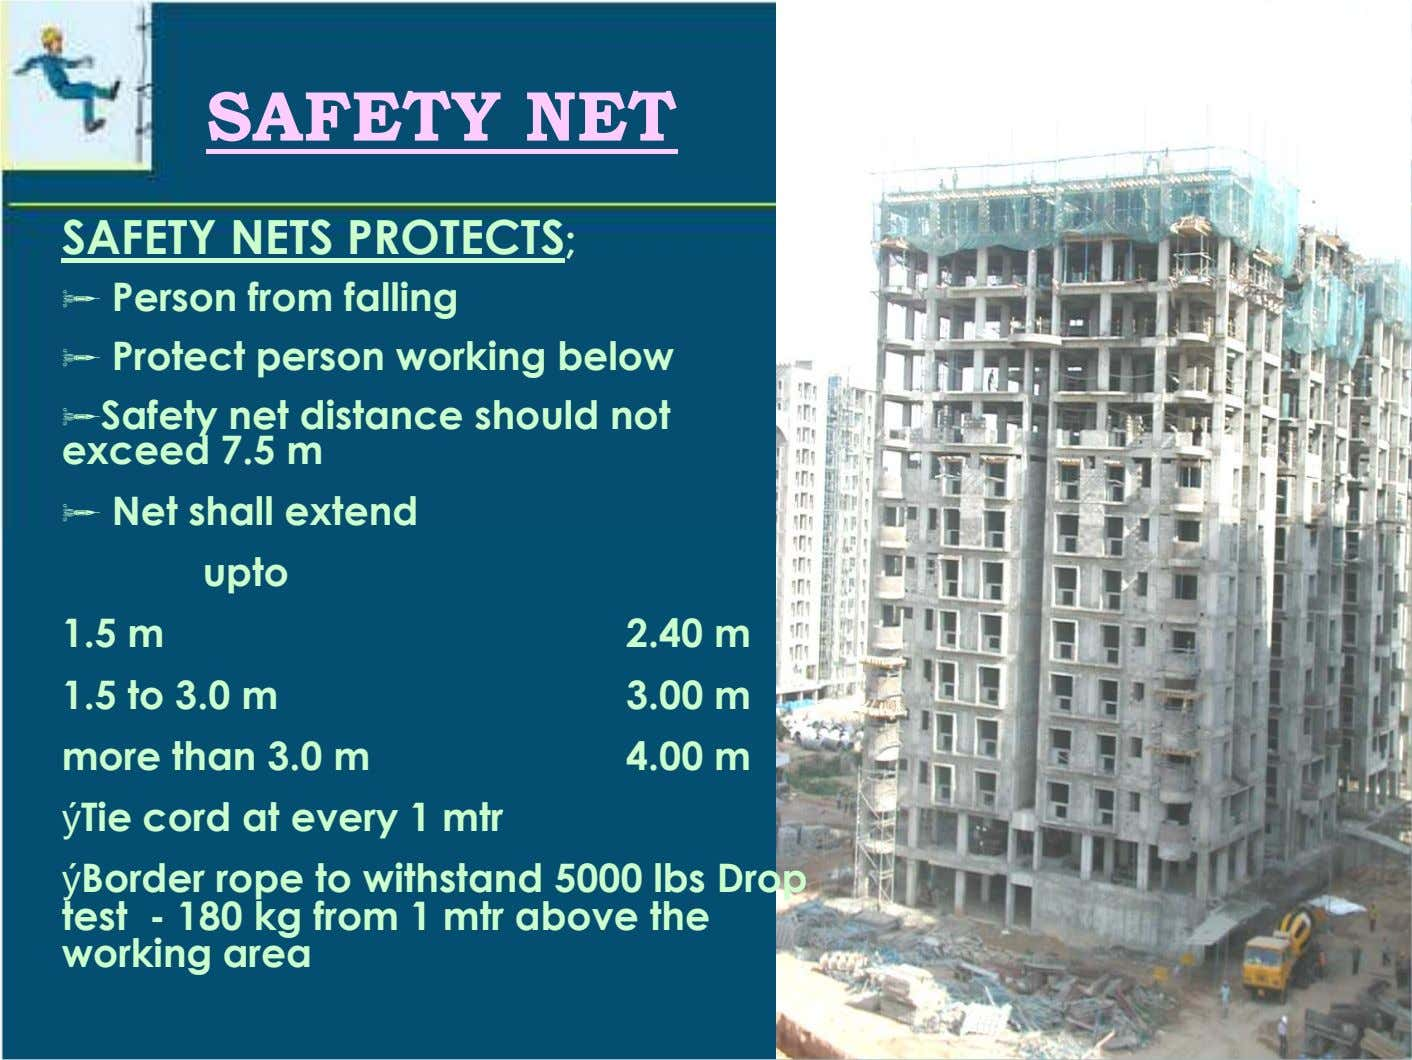 SAFETY NET SAFETY NETS PROTECTS; Person from falling Protect person working below Safety net distance